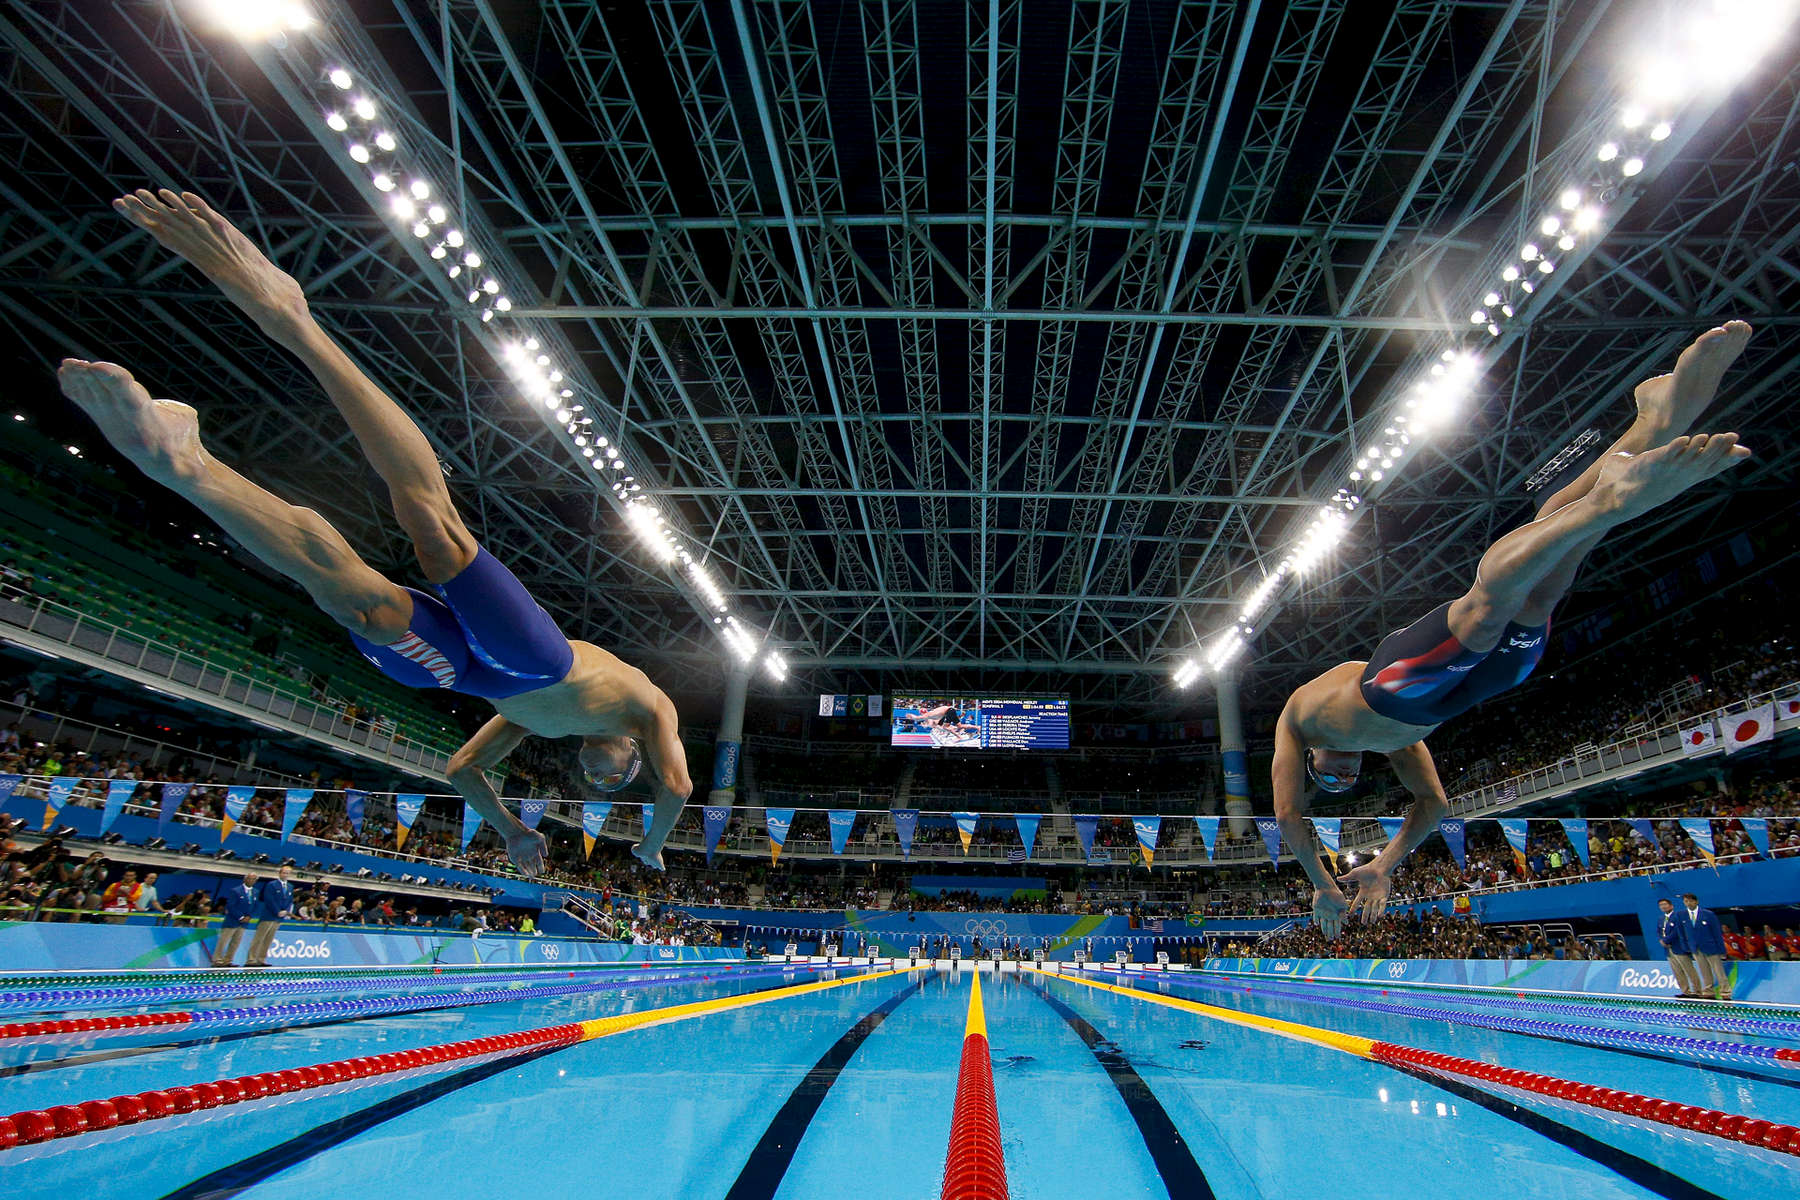 L-R) Michael Phelps and Ryan Lochte of the United States compete in the second Semifinal of the Men's 200m Individual Medley on Day 5 of the Rio 2016 Olympic Games at the Olympic Aquatics Stadium on August 10, 2016 in Rio de Janeiro, Brazil.